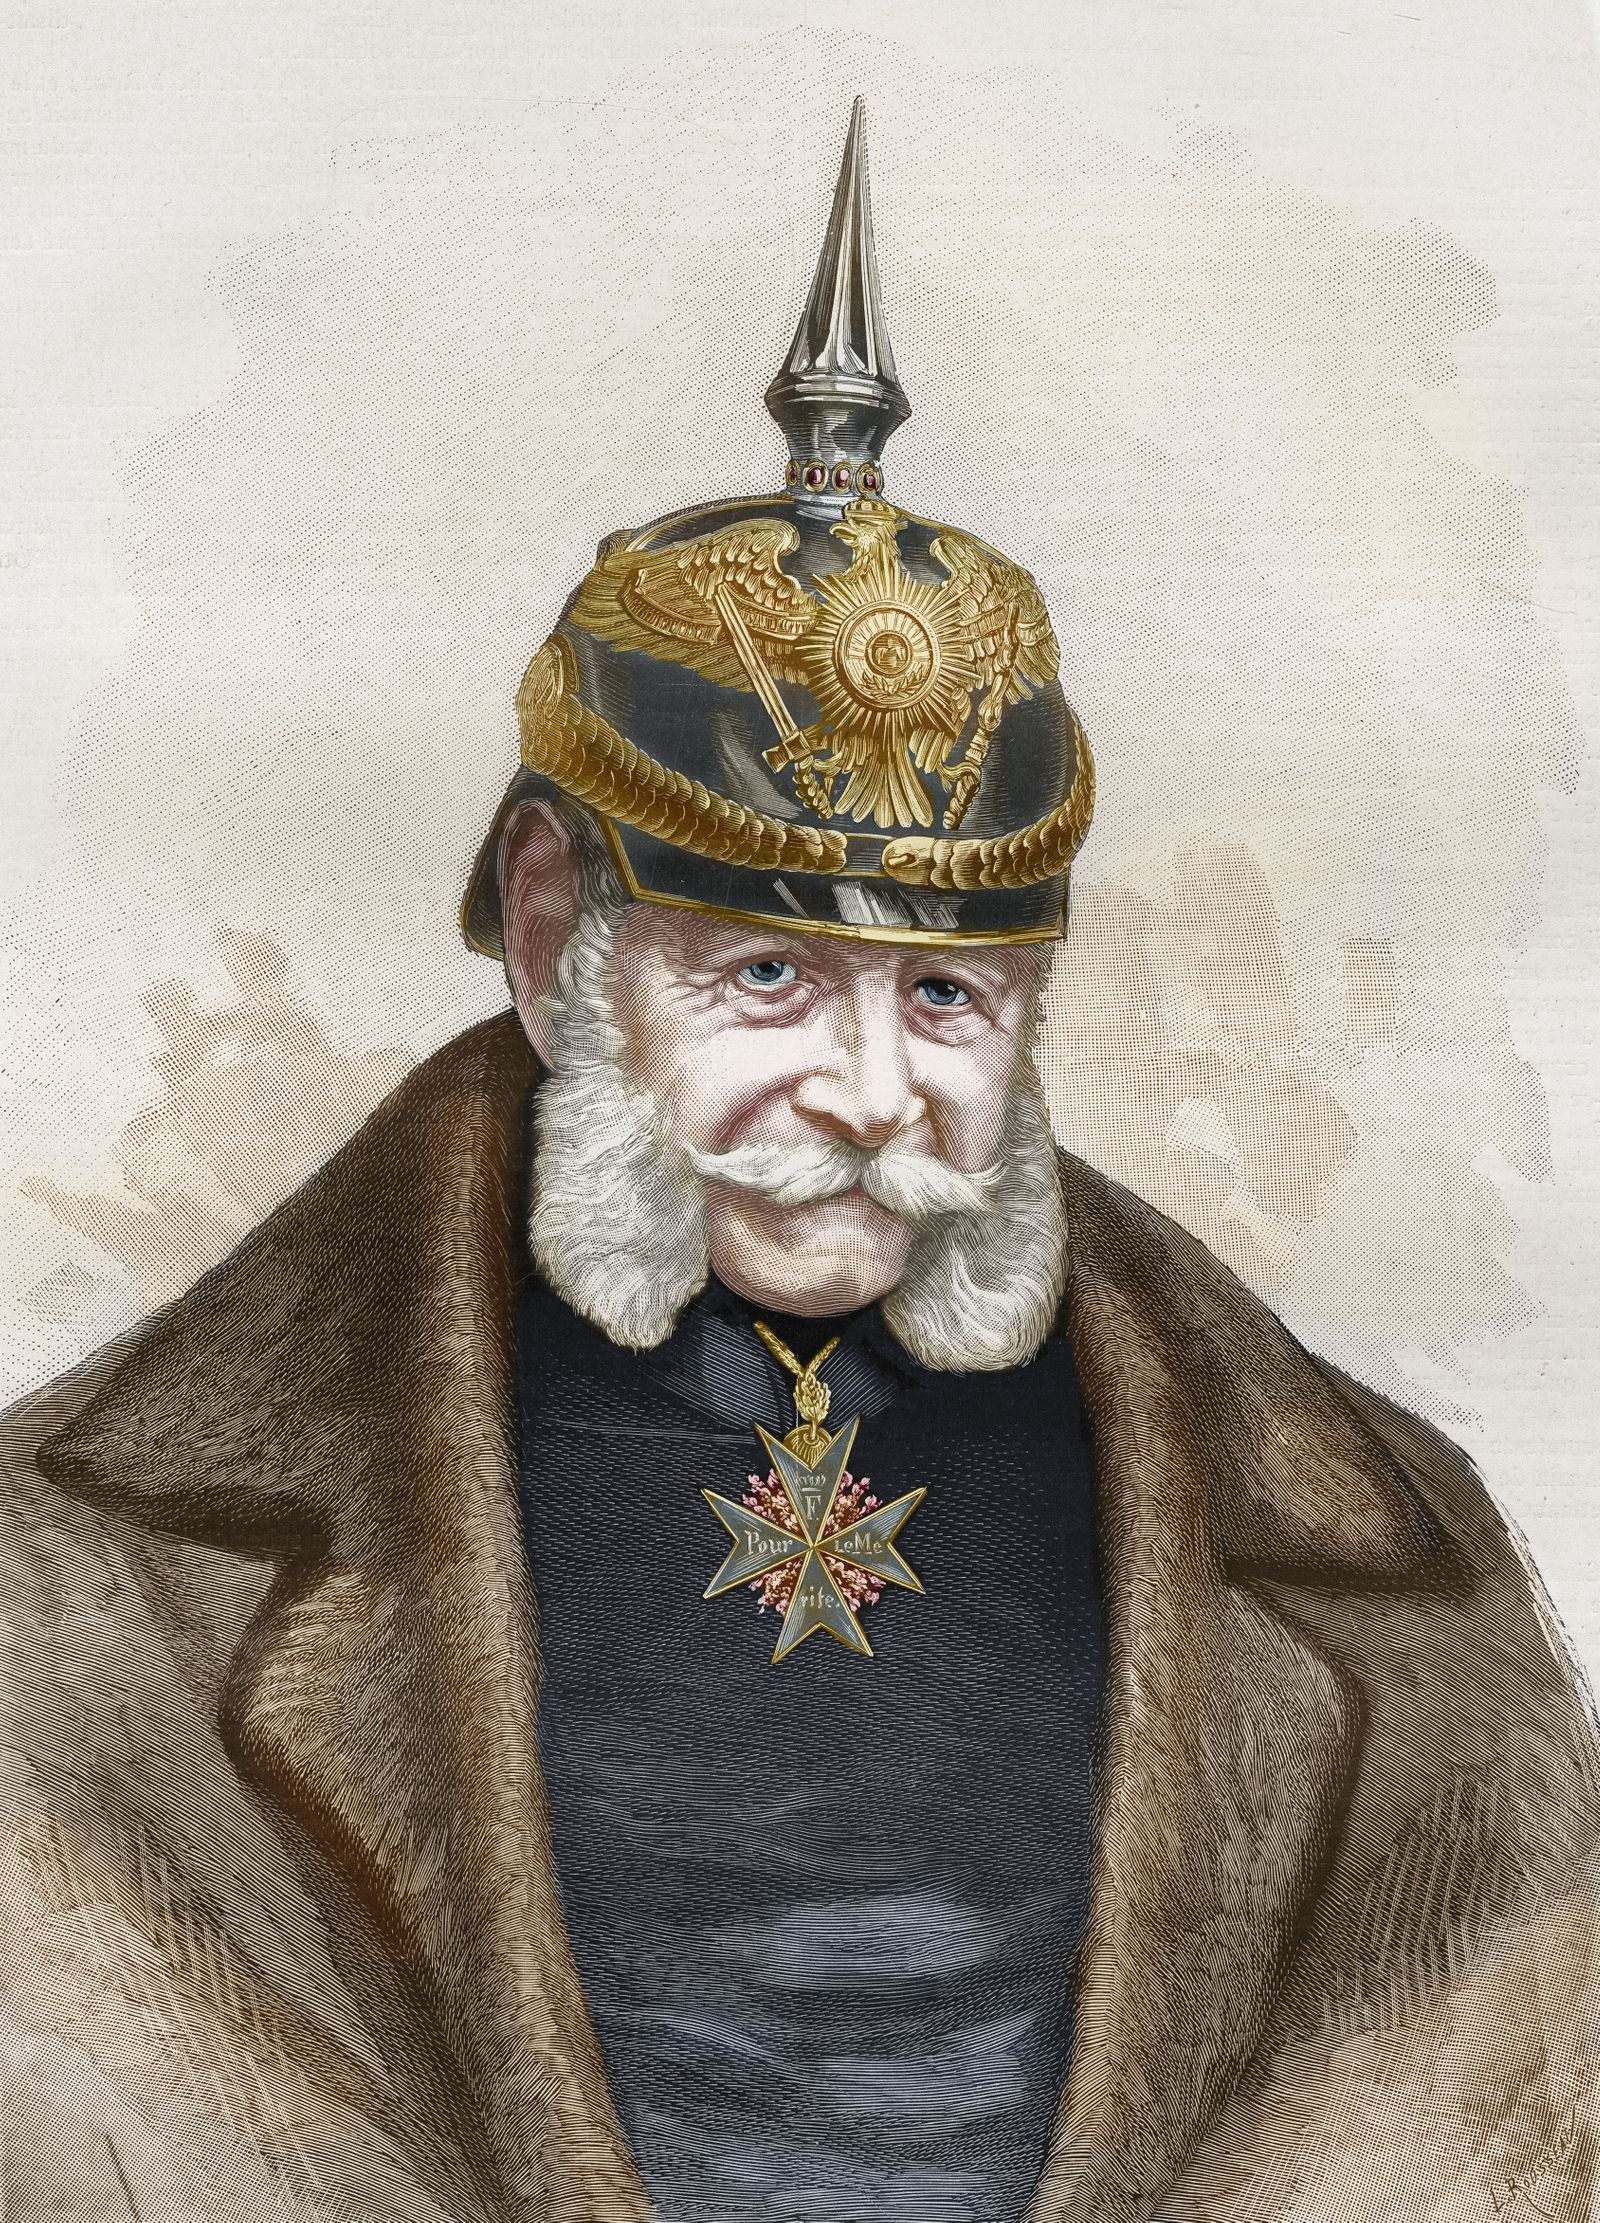 William I (1797-1888), King of Prussia and the first German Emperor born in Berlin (Germany). Engraving published in Paris Illustré on November 19, 1887. Coloured engraving.